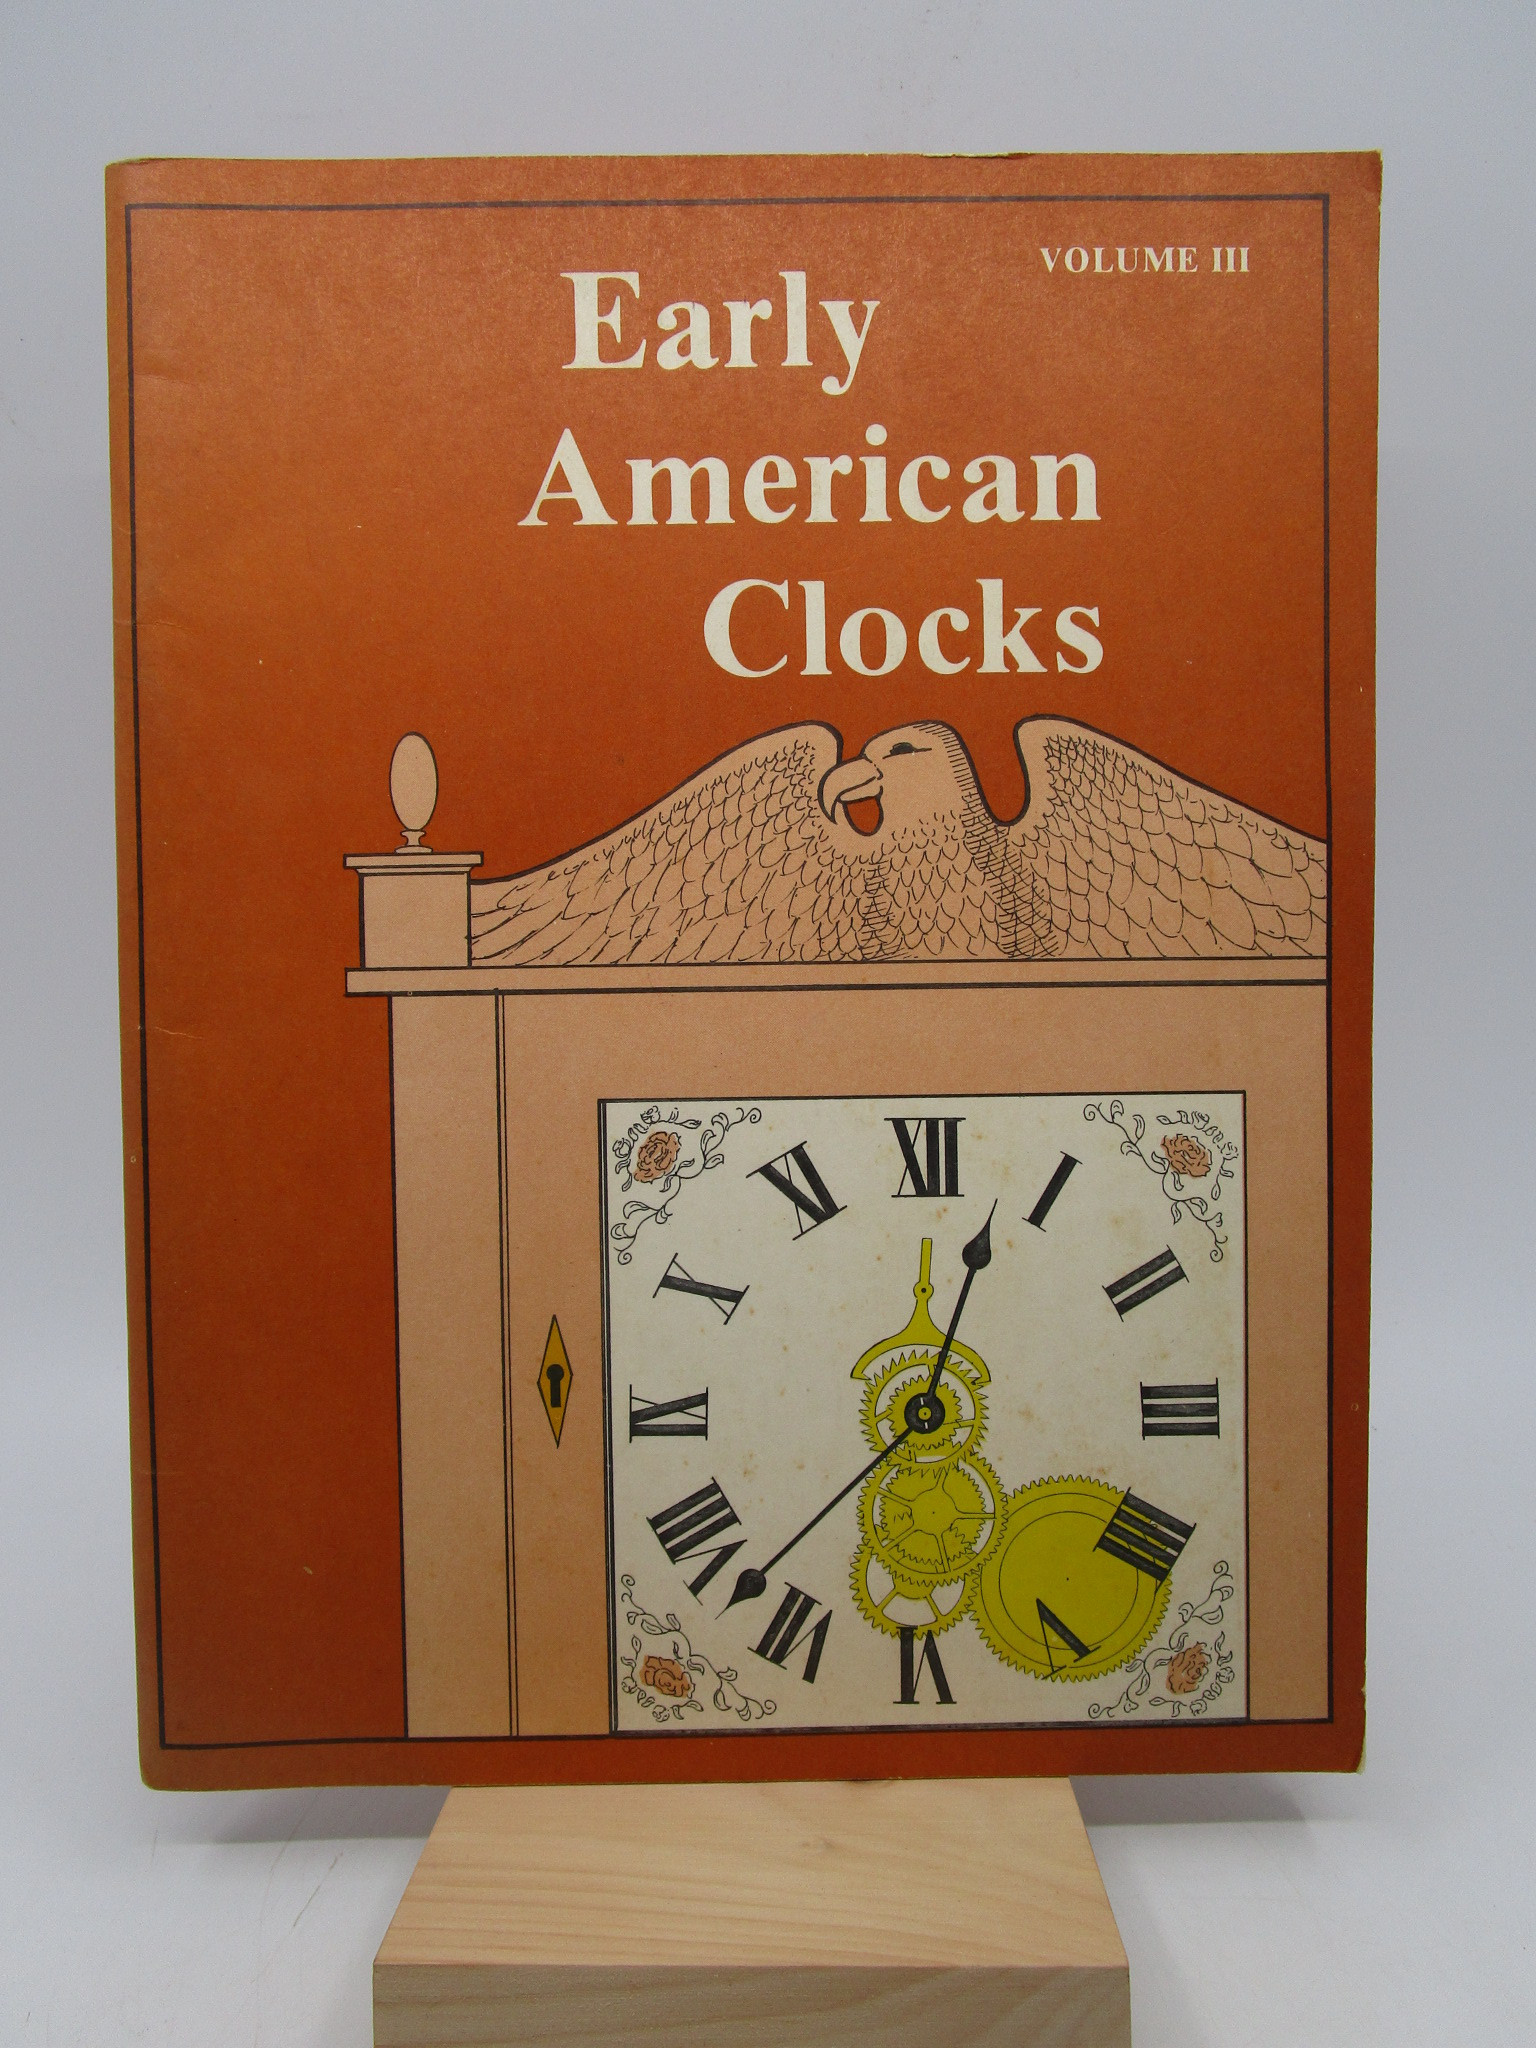 Image for Early American Clocks: A Collectionof Essays on early American clocks and their makers.  A Practical Reference.  Volume III.  (First Edition)